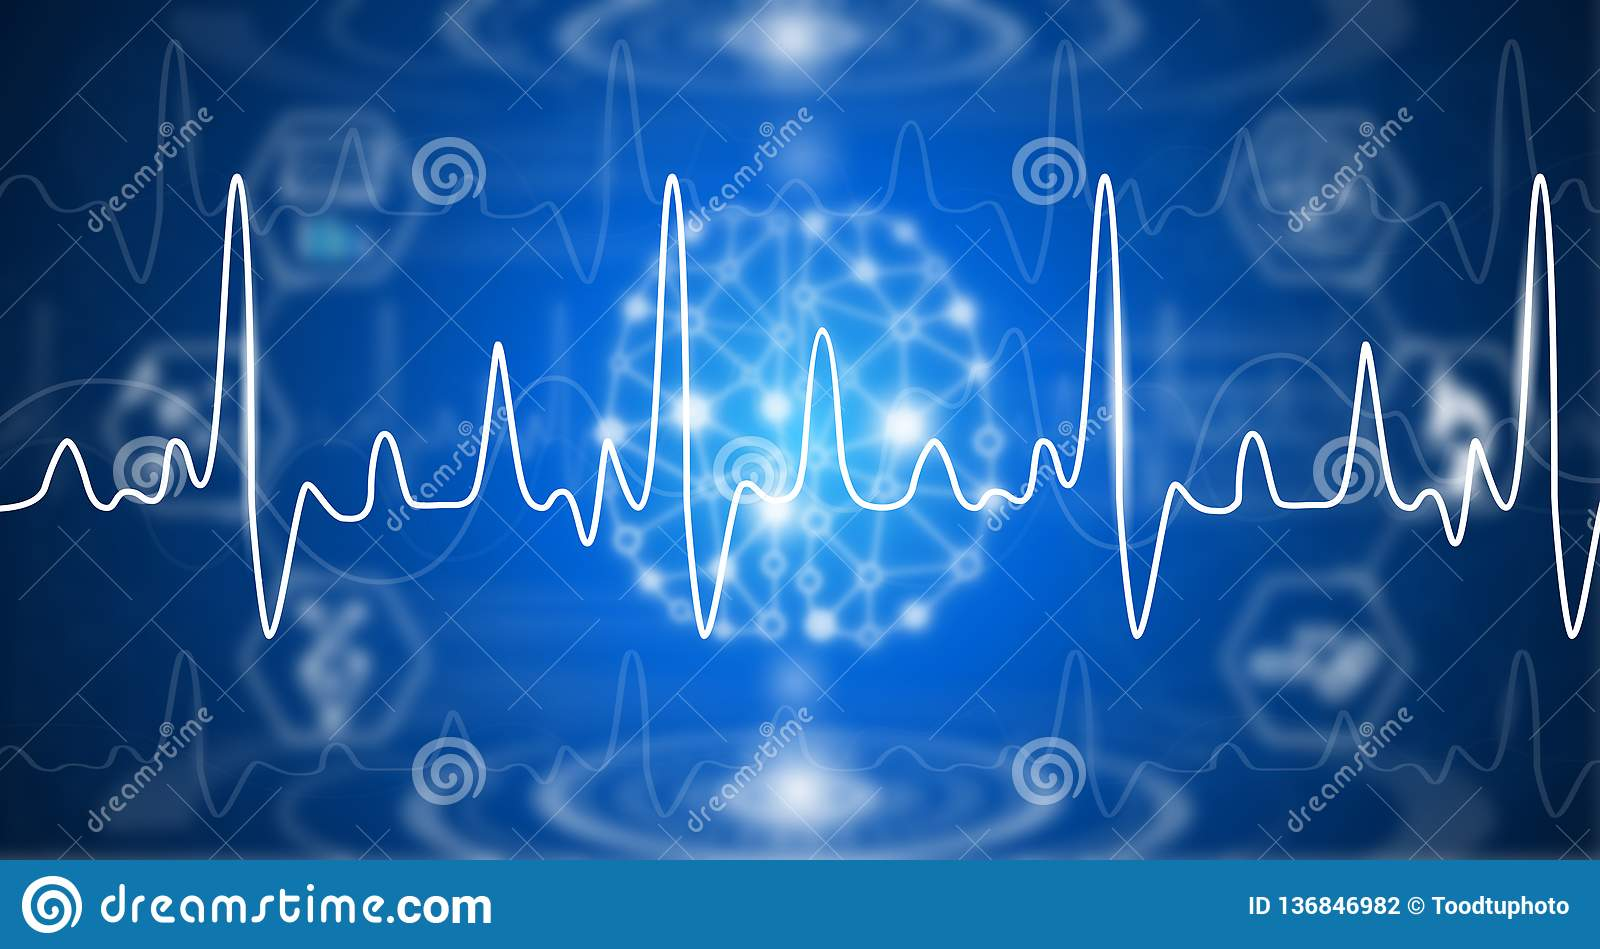 Illustration abstract background technology concept in blue light,brain and human body heal